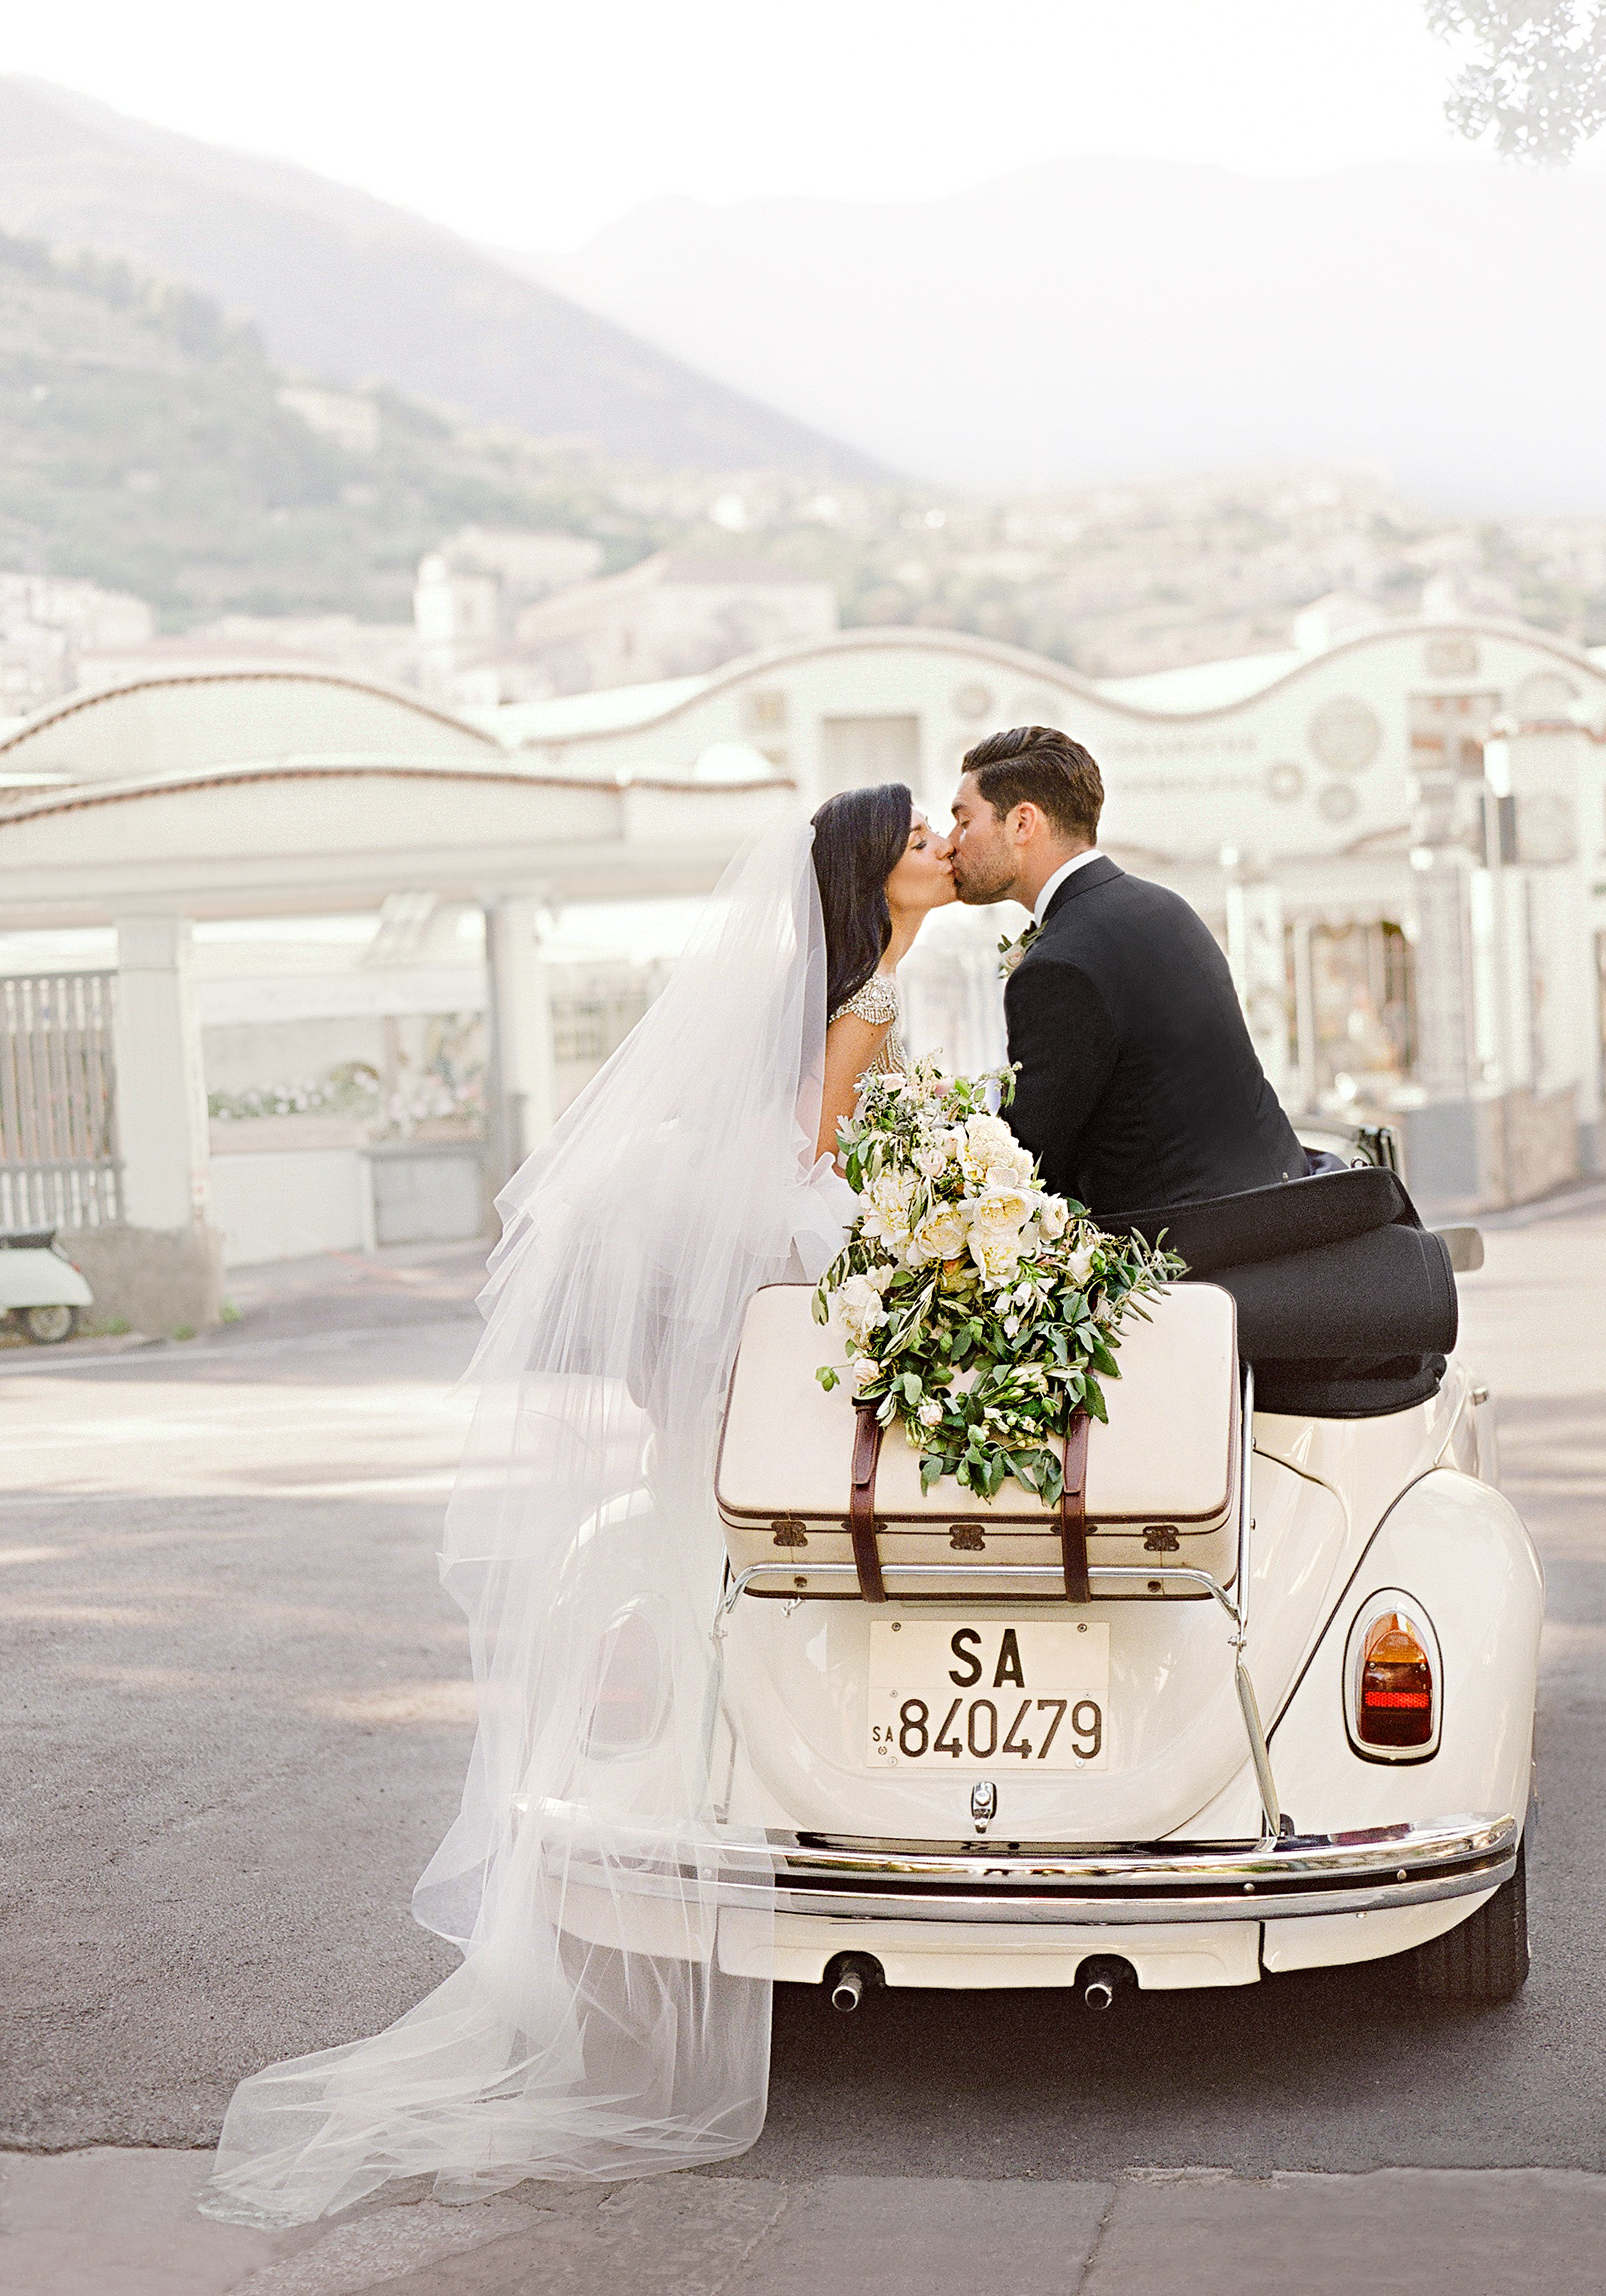 married couple sitting in the back of white car kissing